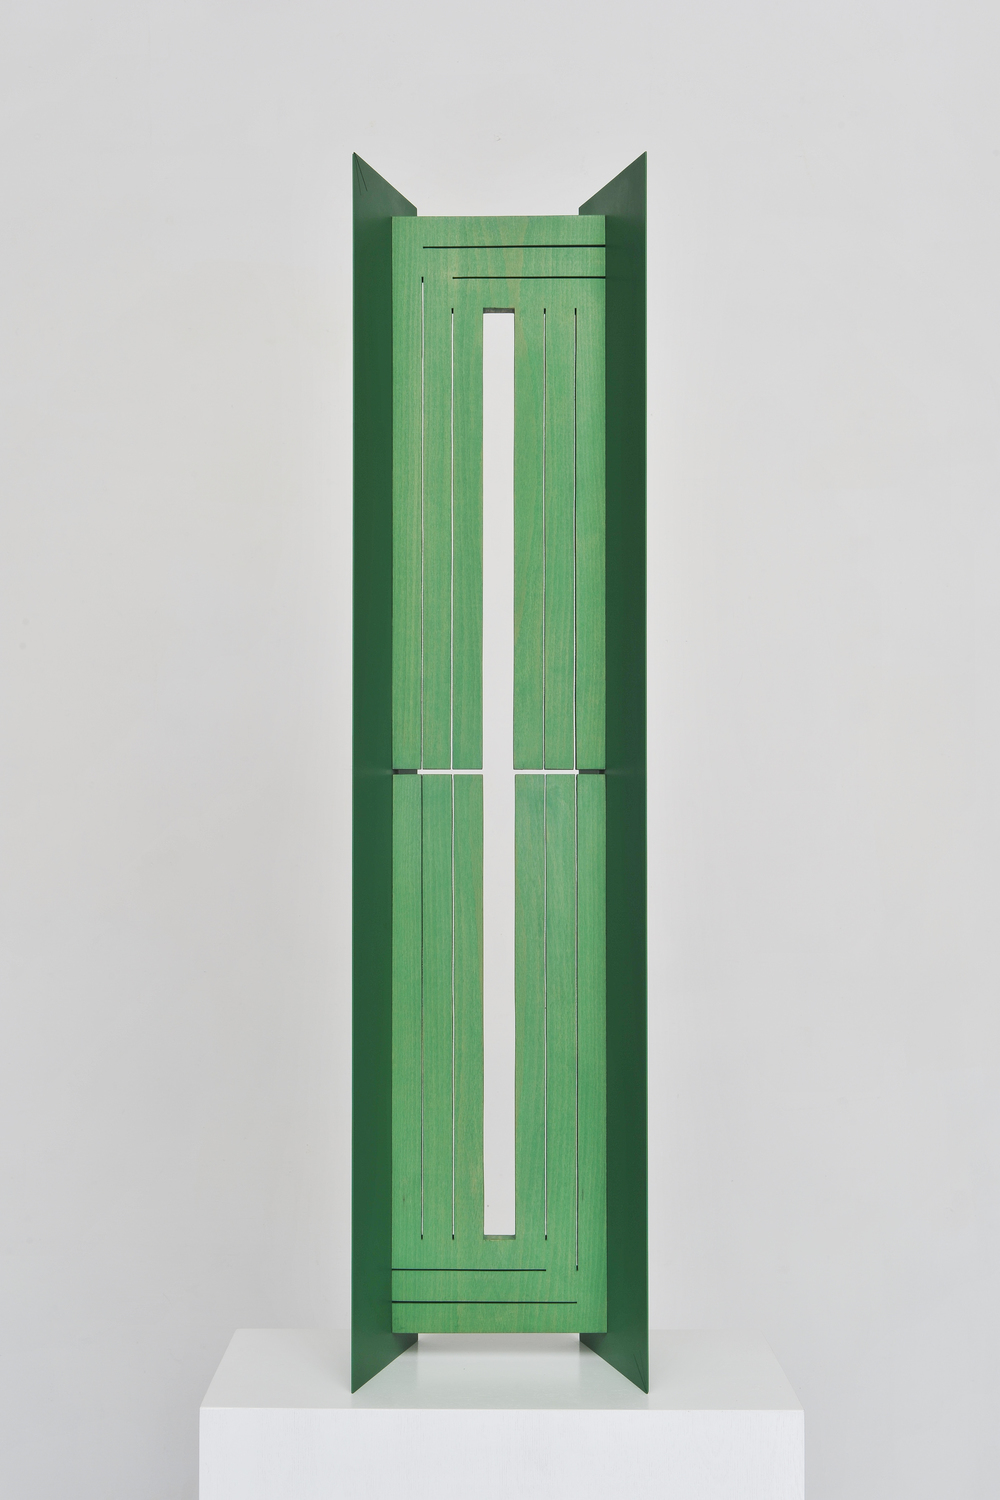 Window (Thin) 2014 Euro-beech hardwood, steel, copper rivets, enamel, wax 96.5 x 22.8 x 17.7 cm / 38 x 9 x 7 in Plinth: 91.4 x 38.1 x 27.9 cm / 36 x 18 x 10 in